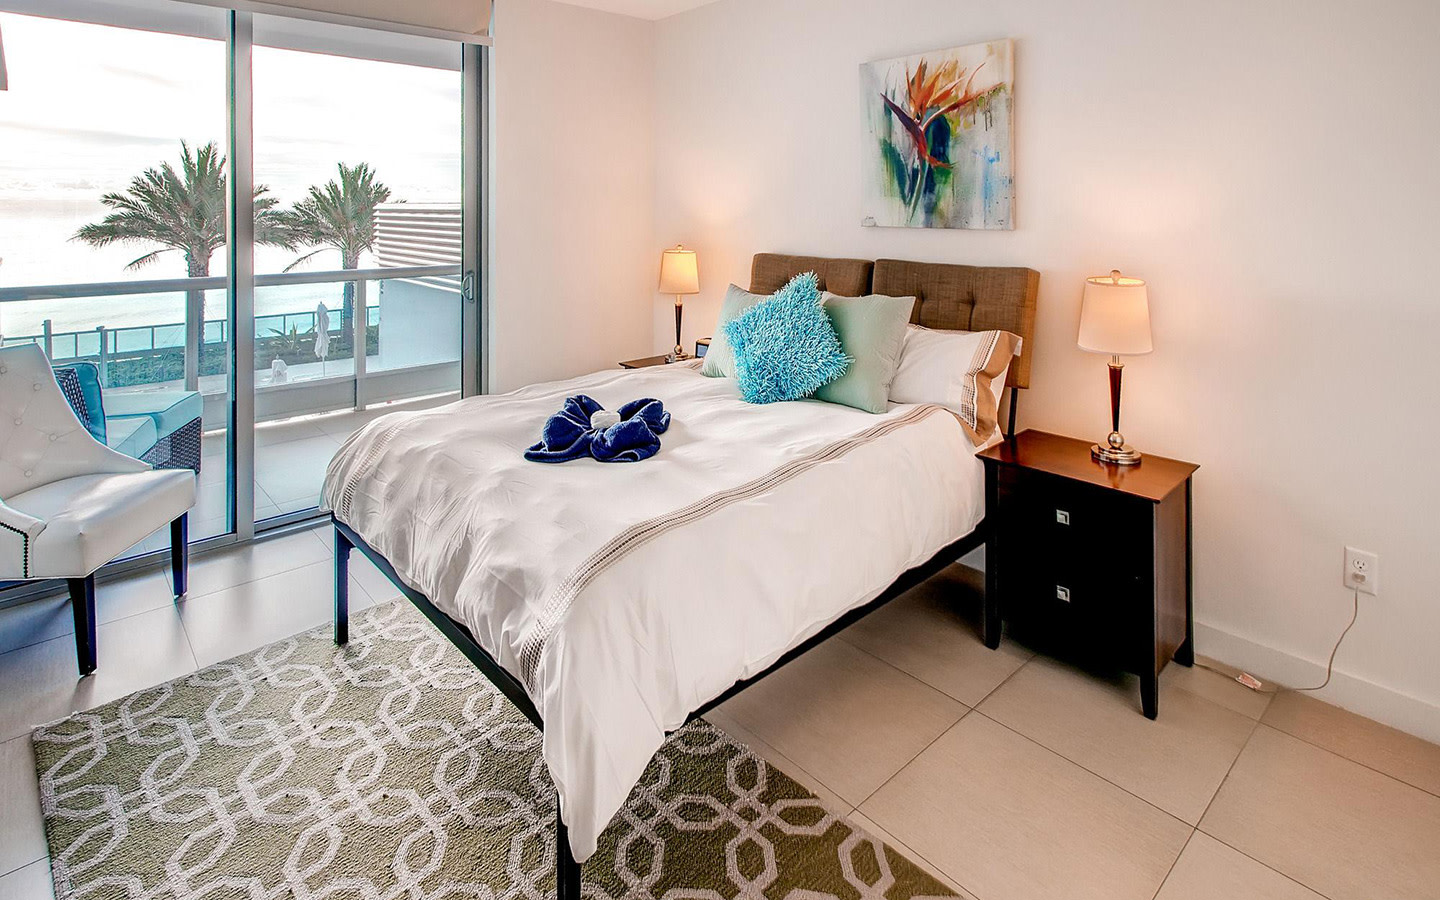 Churchill suites monte carlo miami beach - Cheap 2 bedroom suites in miami beach ...